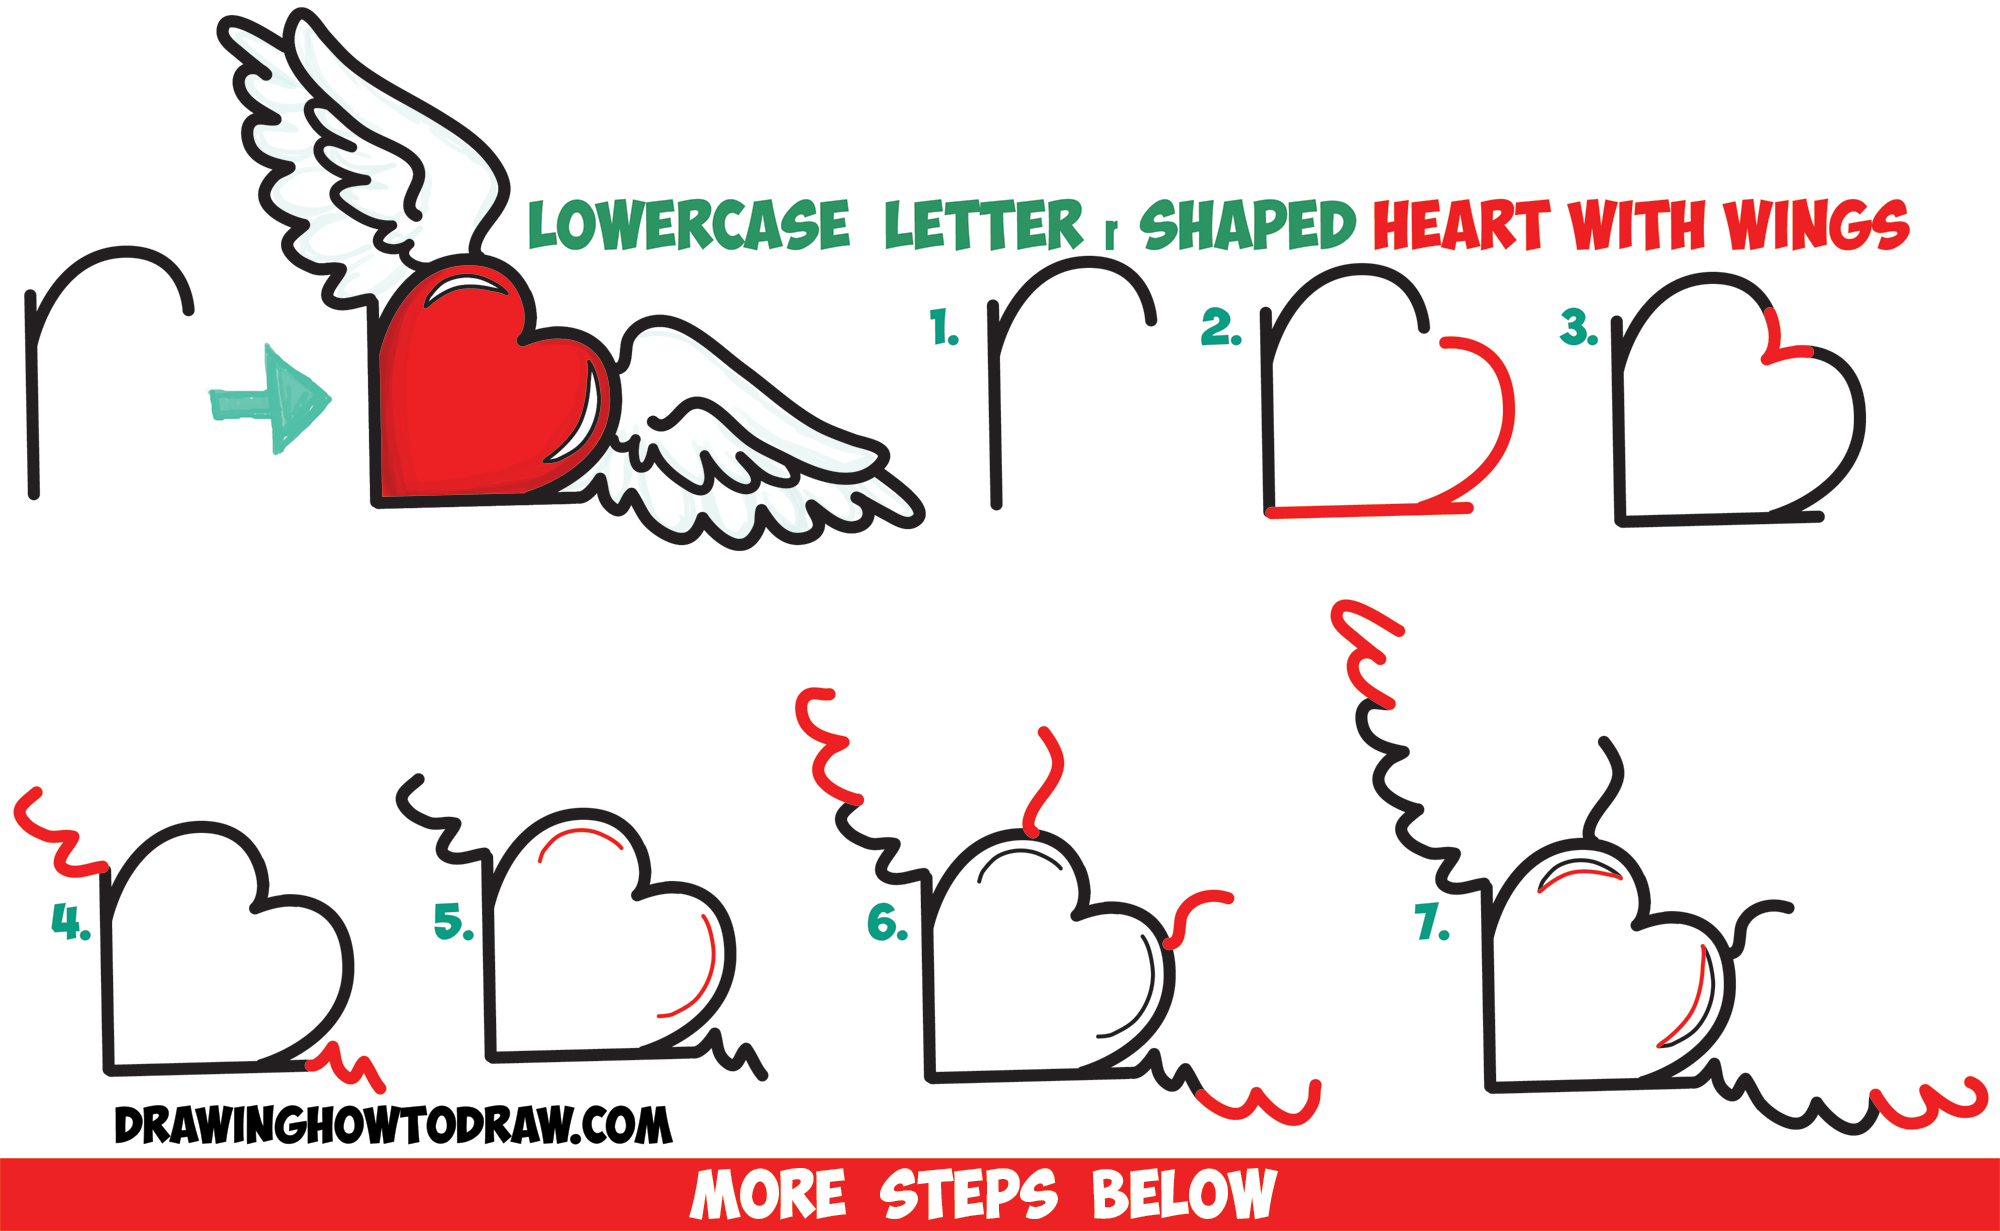 How to Draw Heart with Wings from Lowercase Letter r Shapes - Easy Step by Step Drawing Tutorial